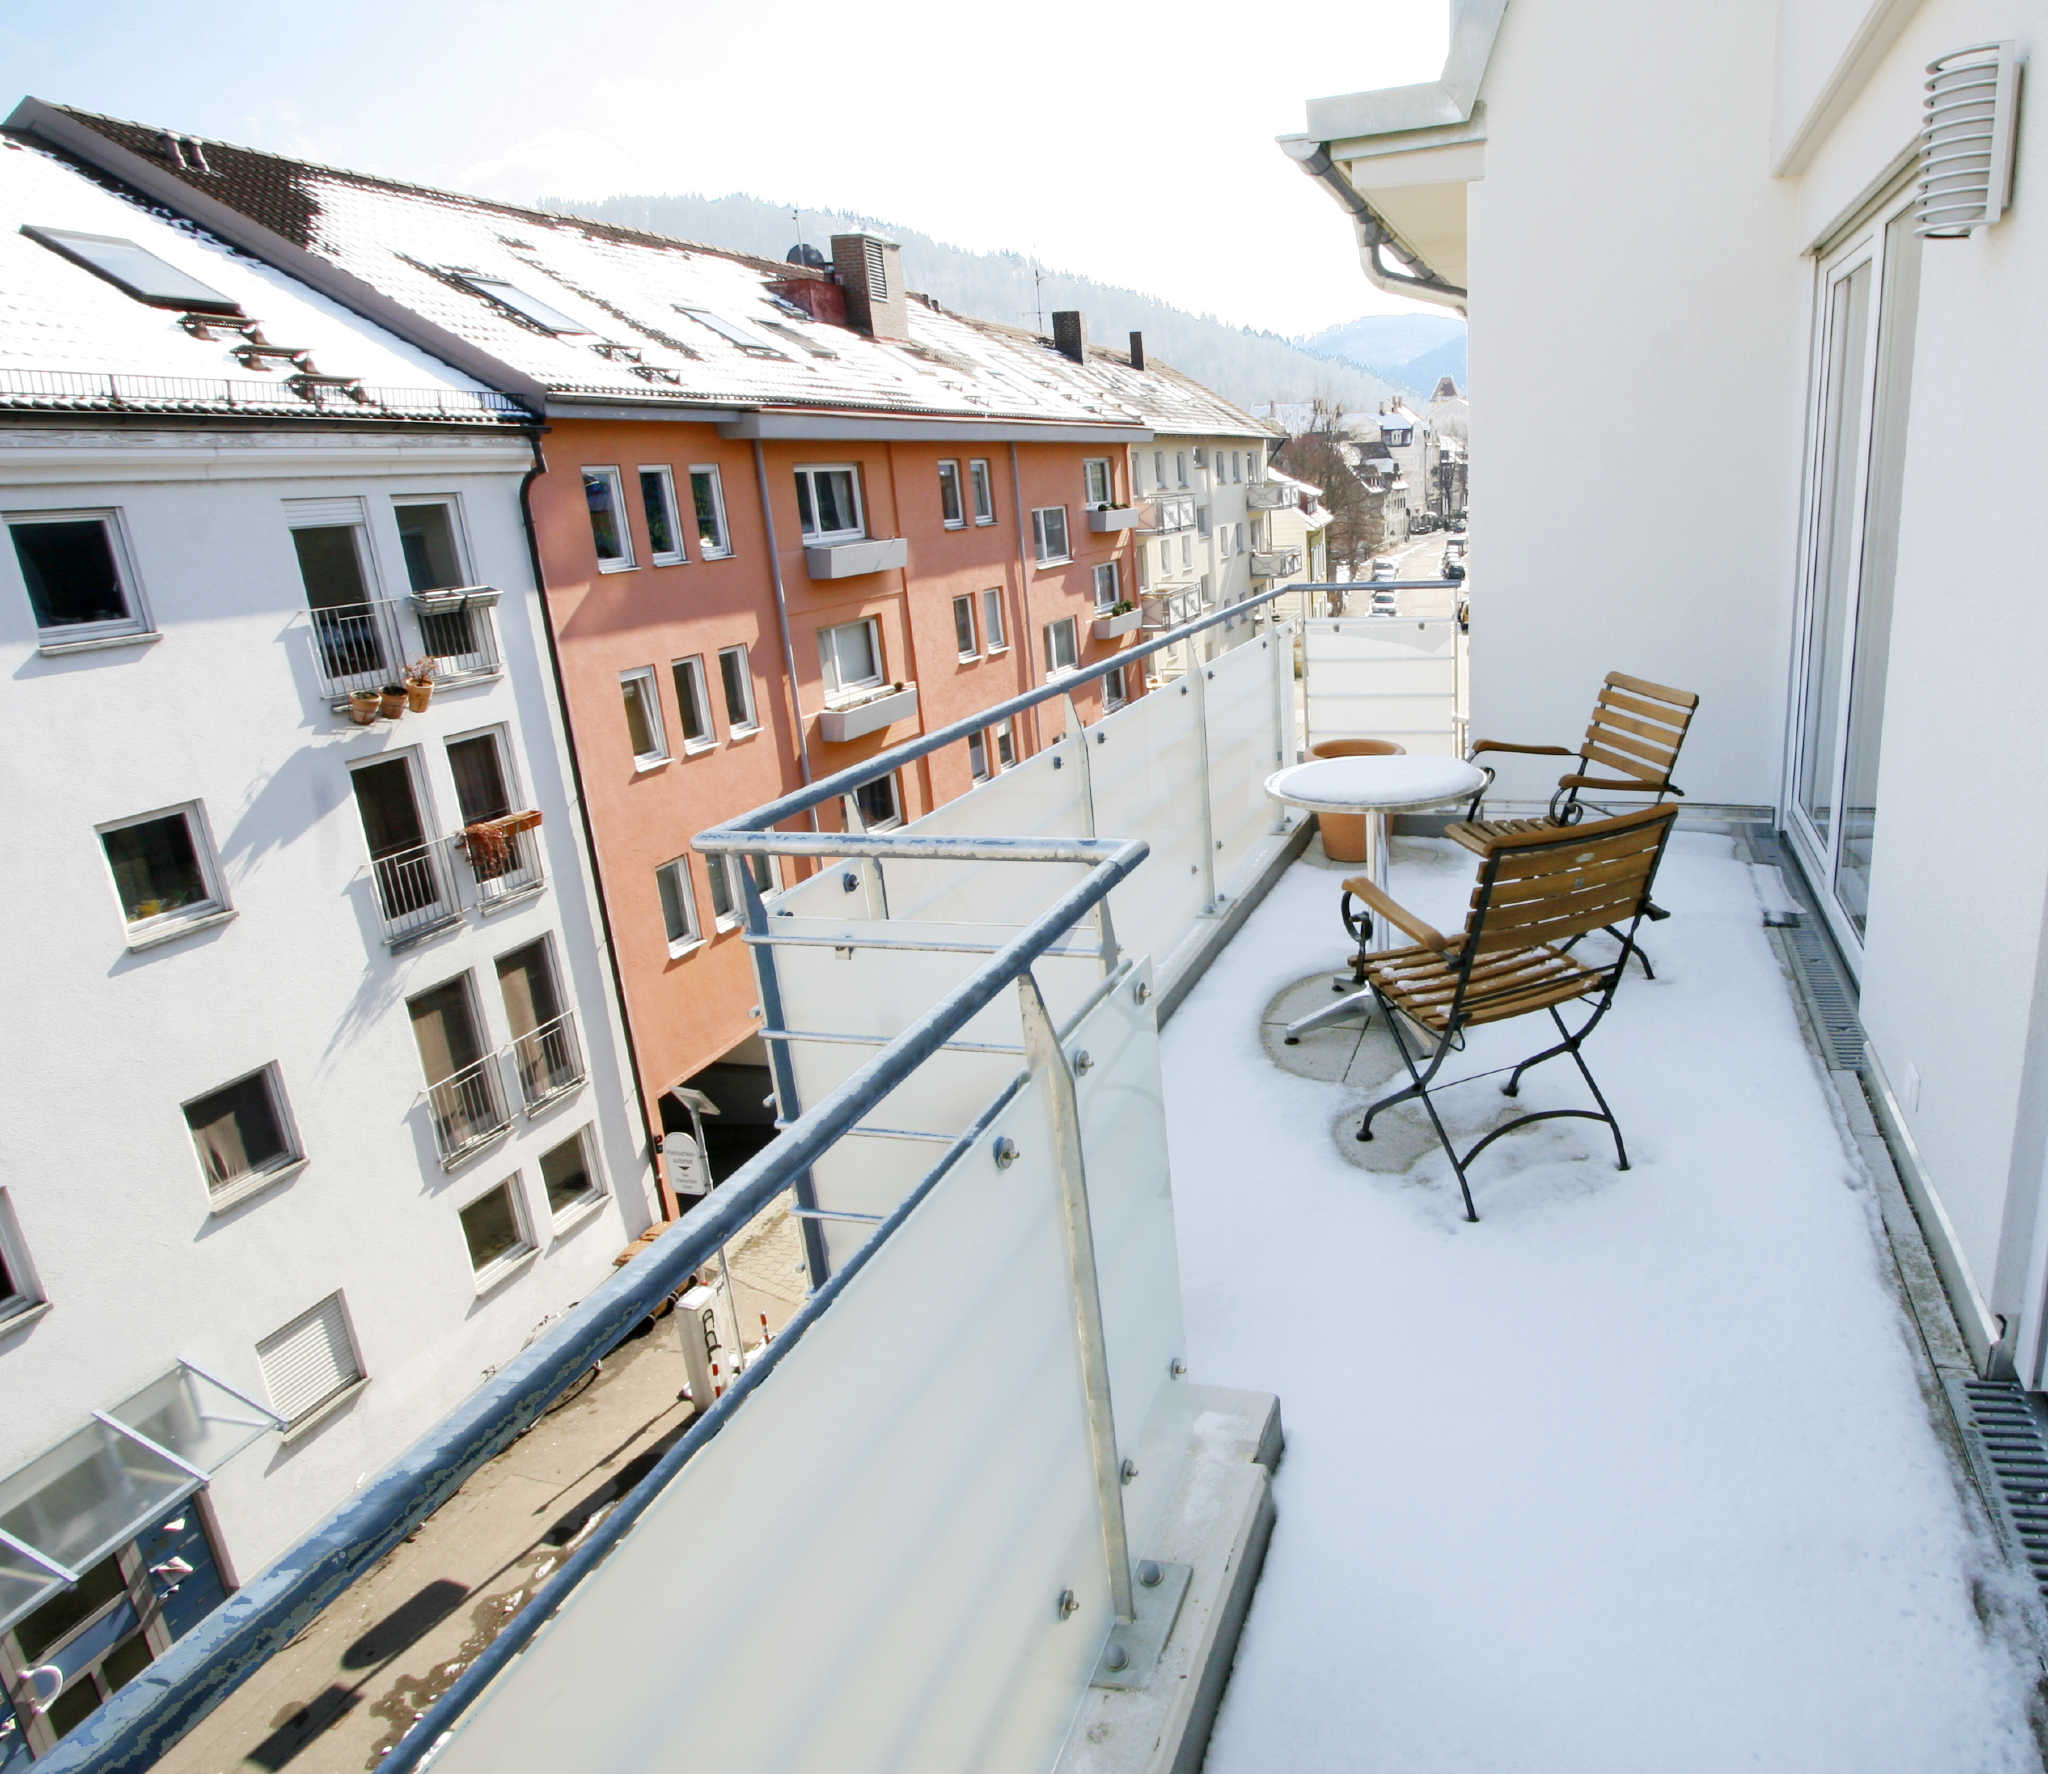 Balkon im Winter